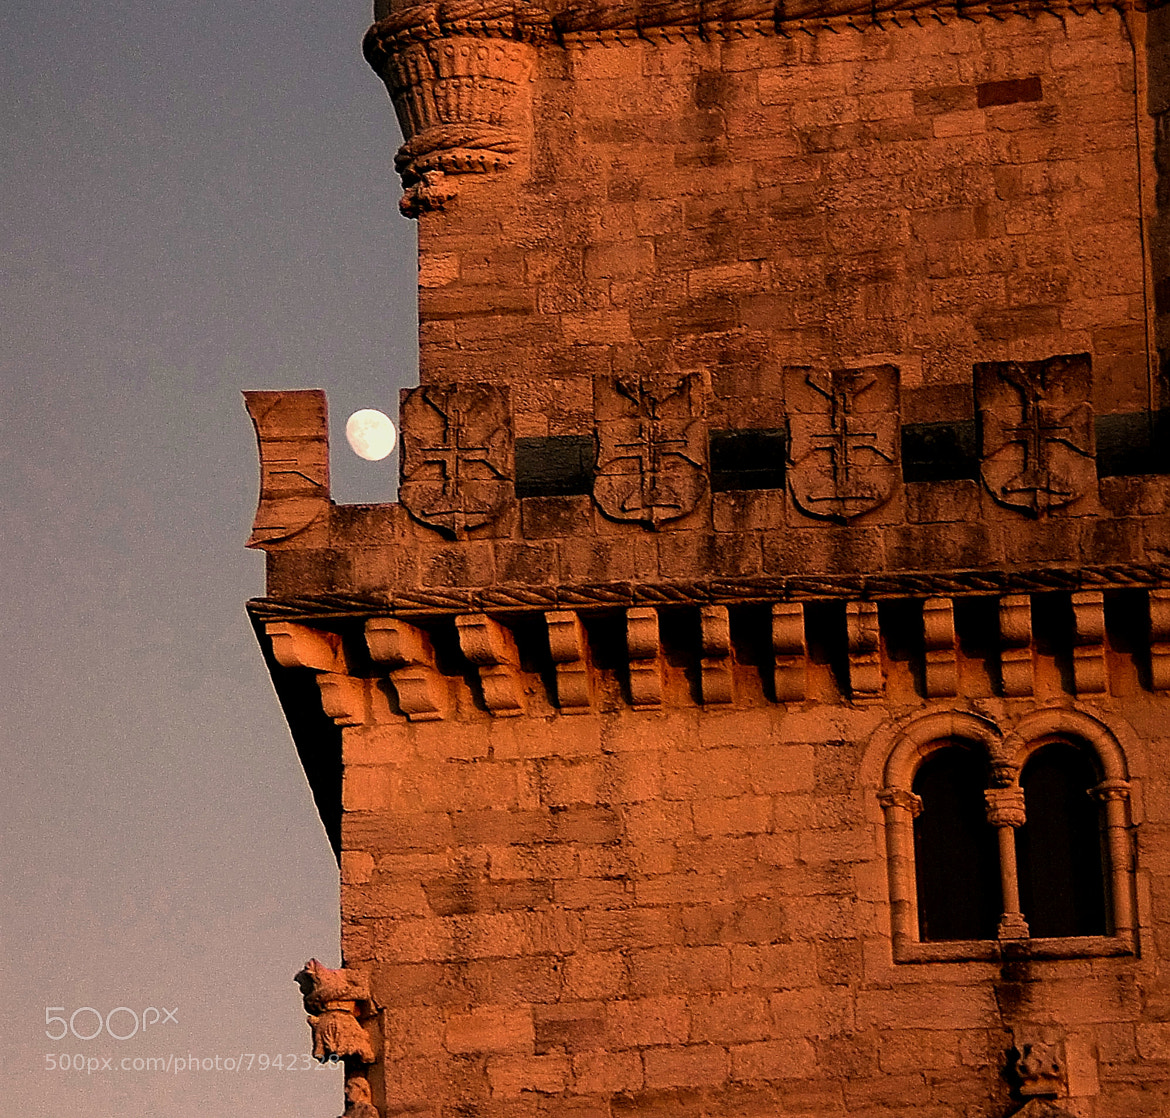 Photograph moon in defensive mood by Rodrigo Monteiro on 500px